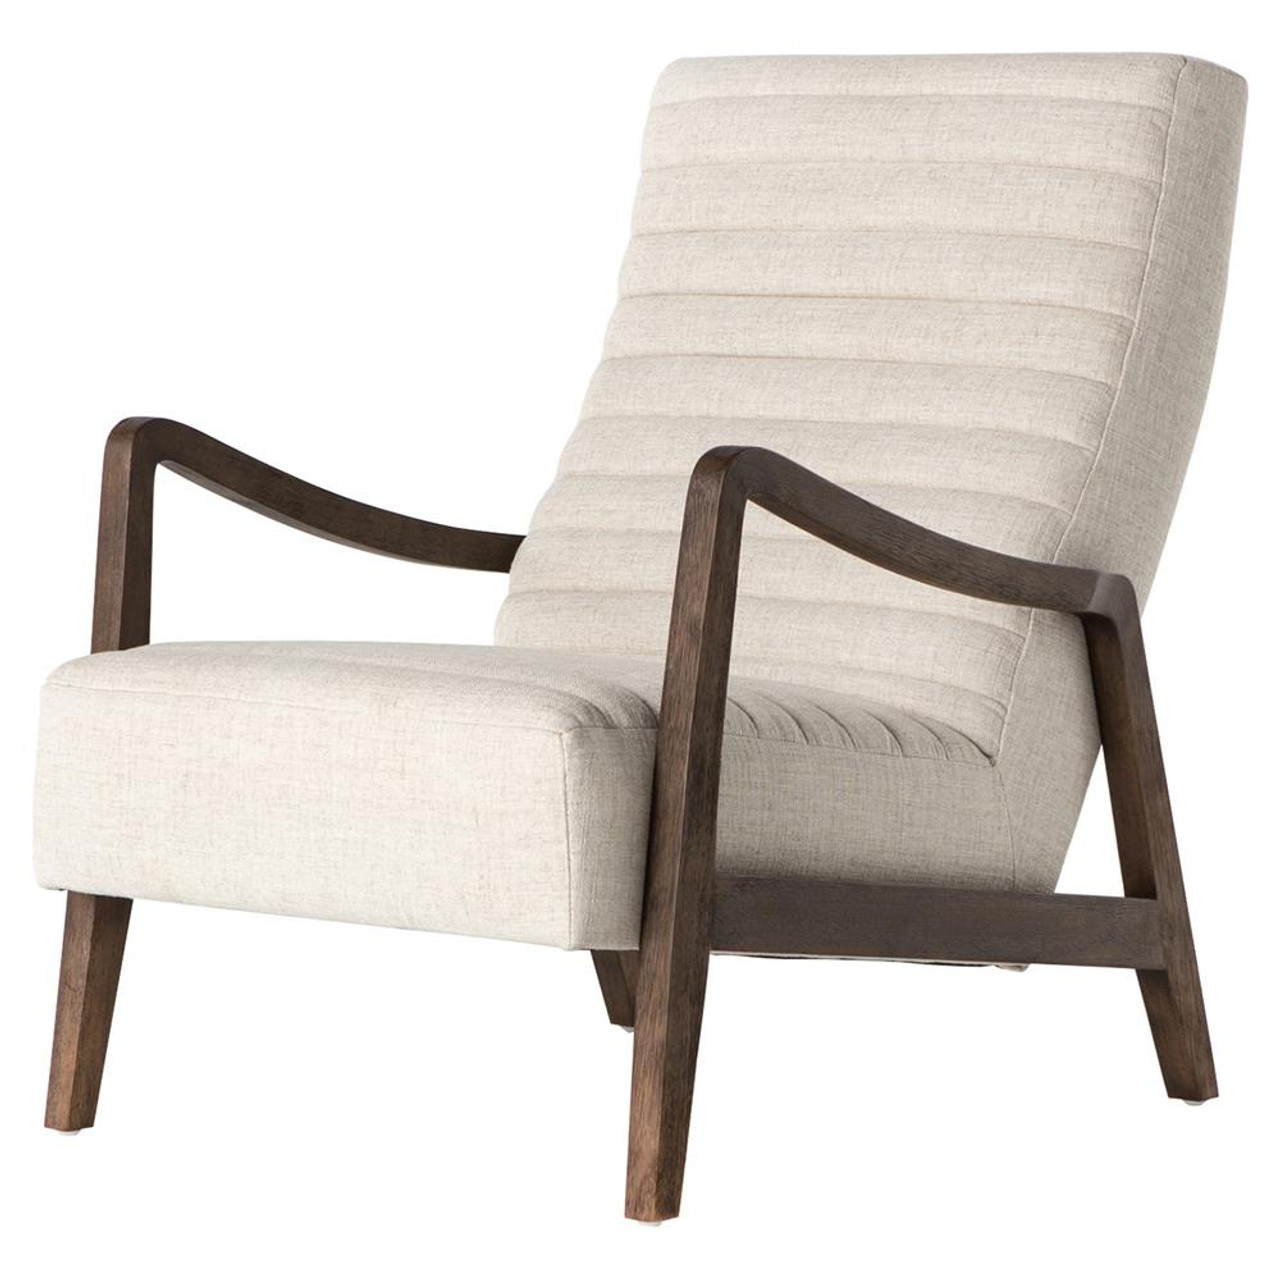 Chance modern linen upholstered lounge chairs